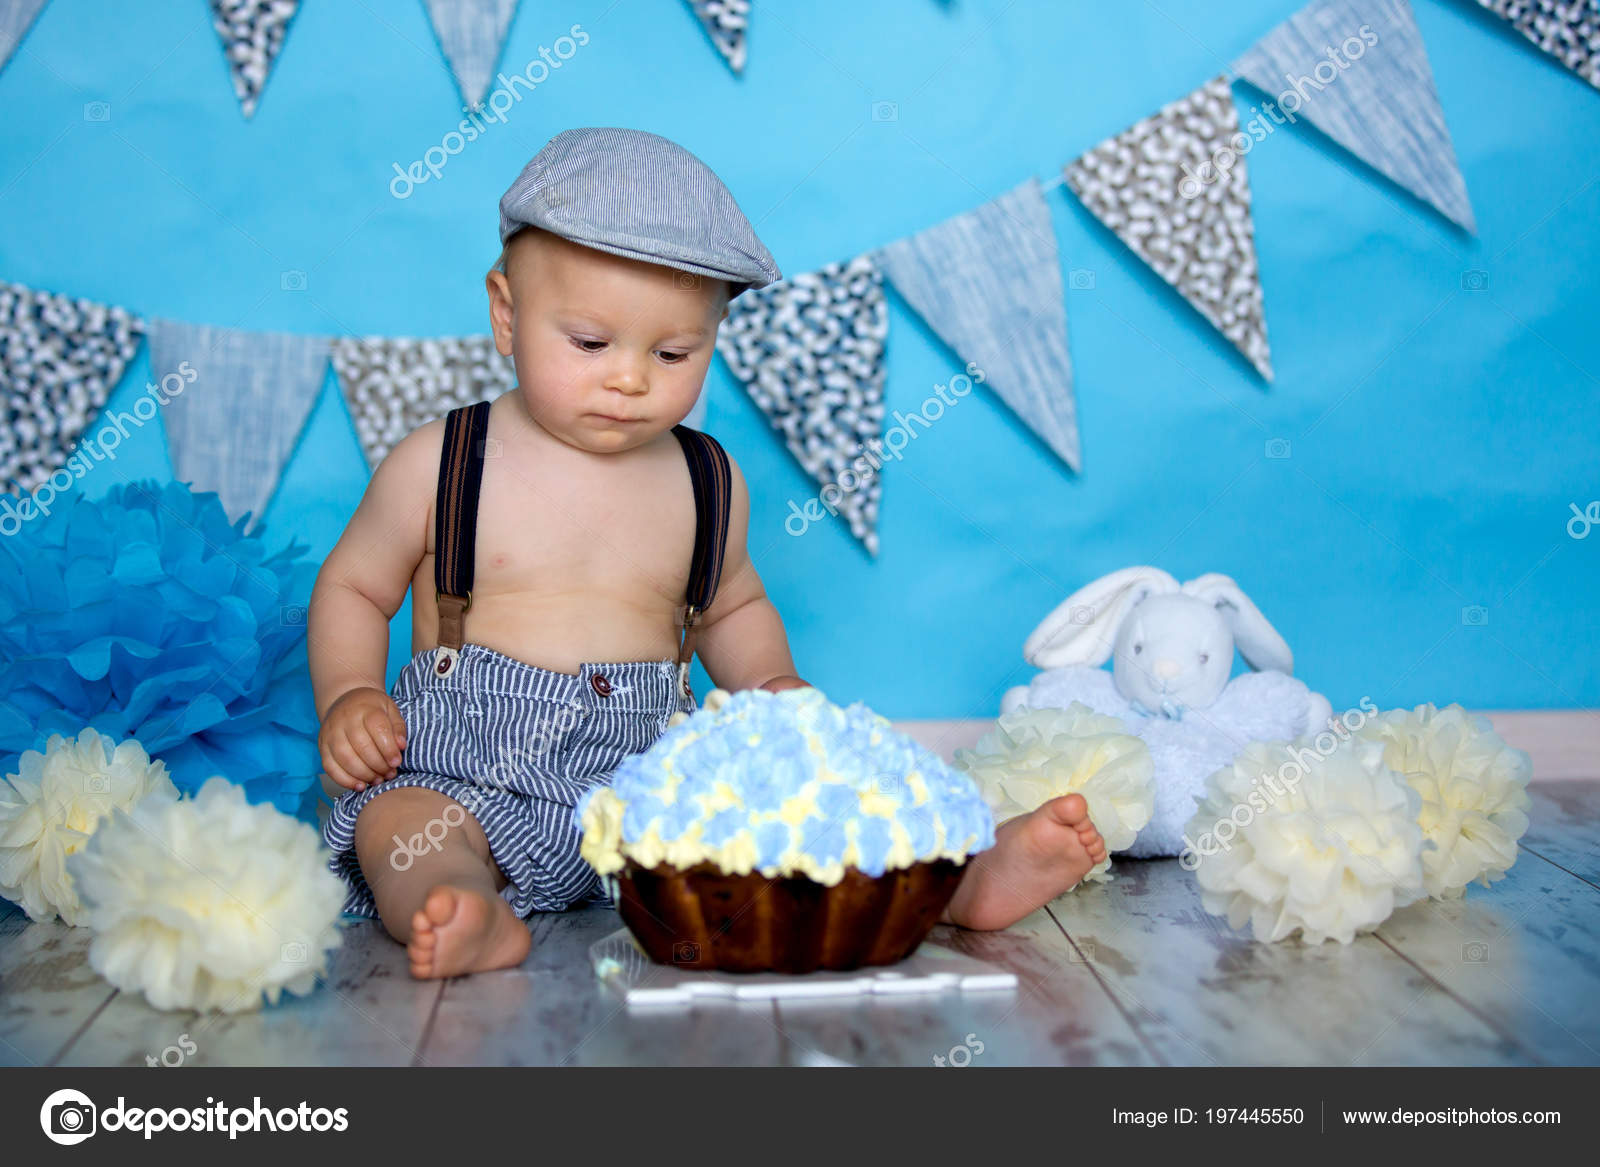 Little Baby Boy Celebrating His First Birthday Smash Cake Party